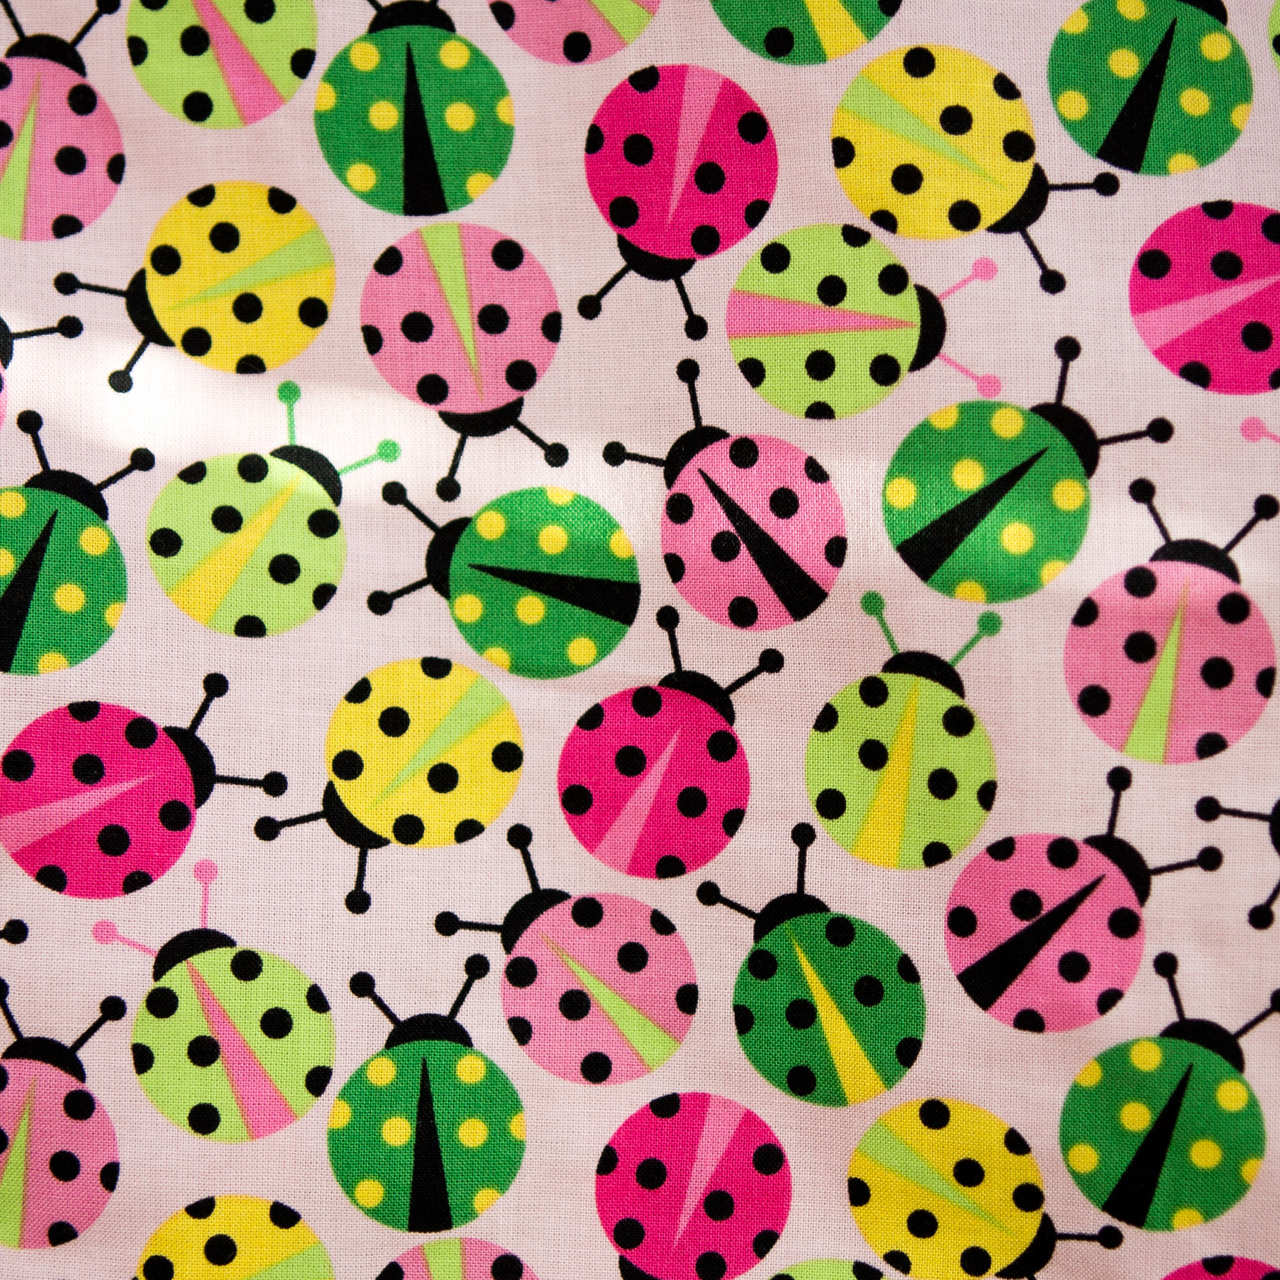 Ladybug Dance print